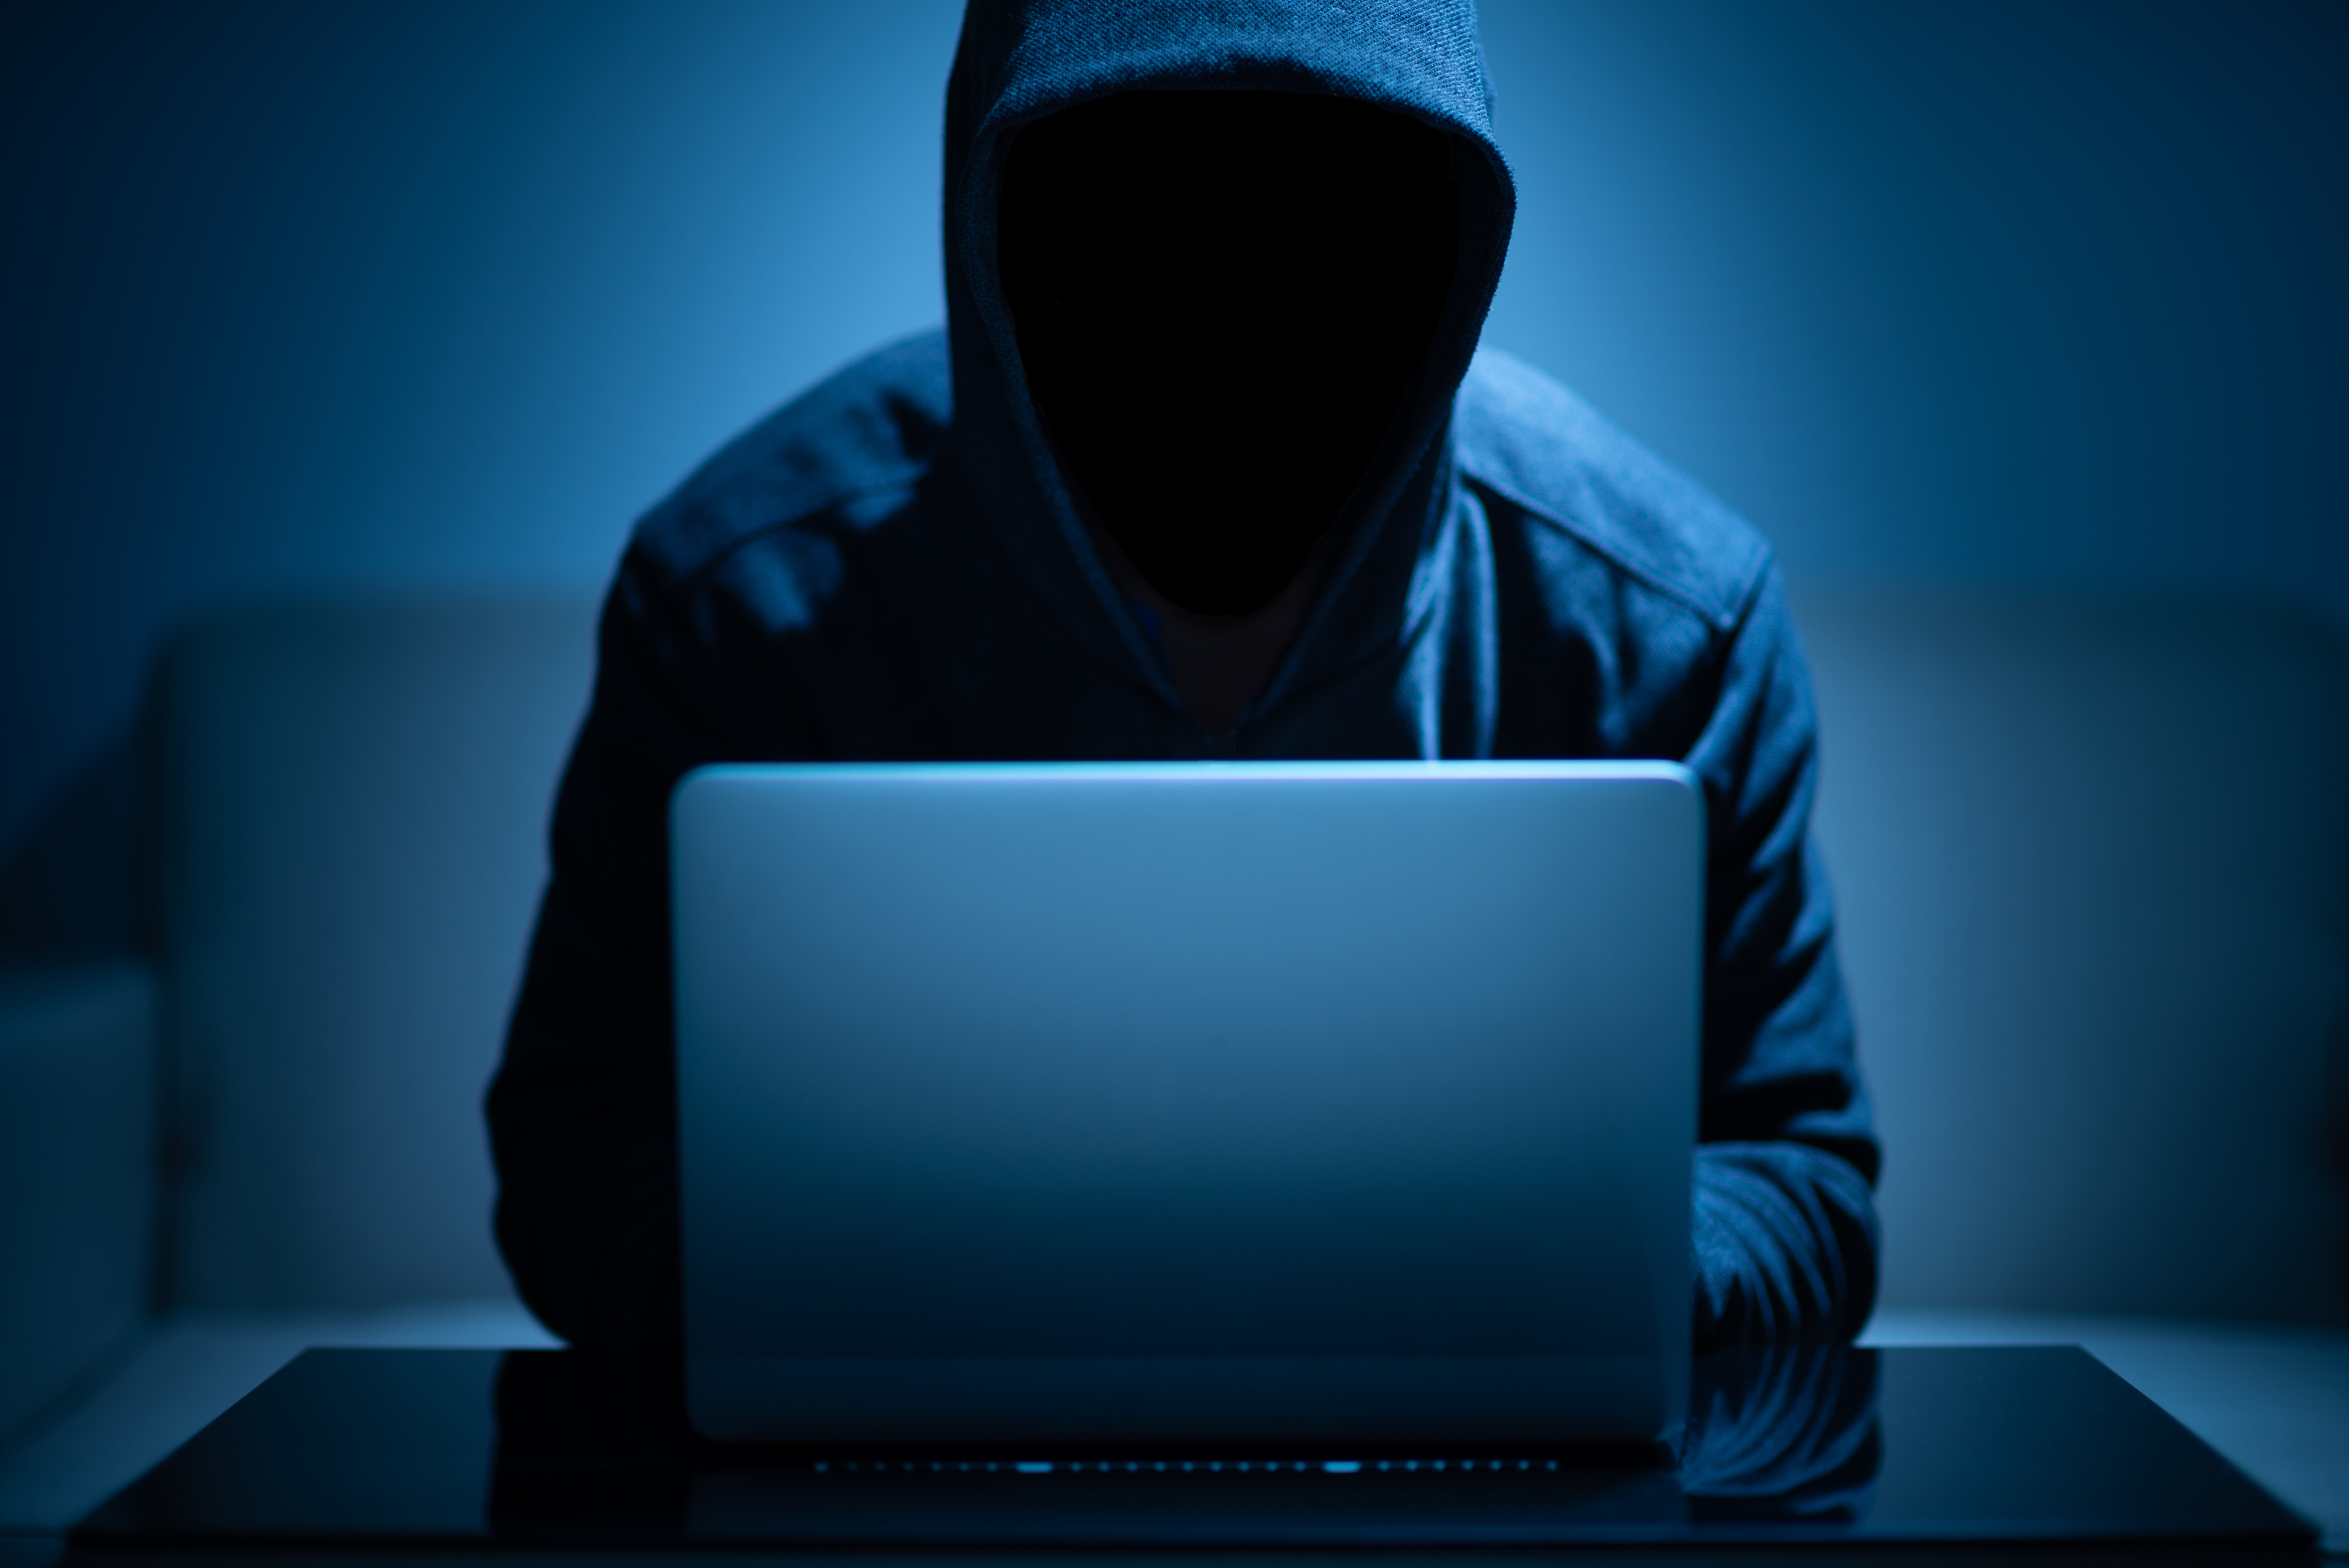 What Are the Different Types of Hackers?